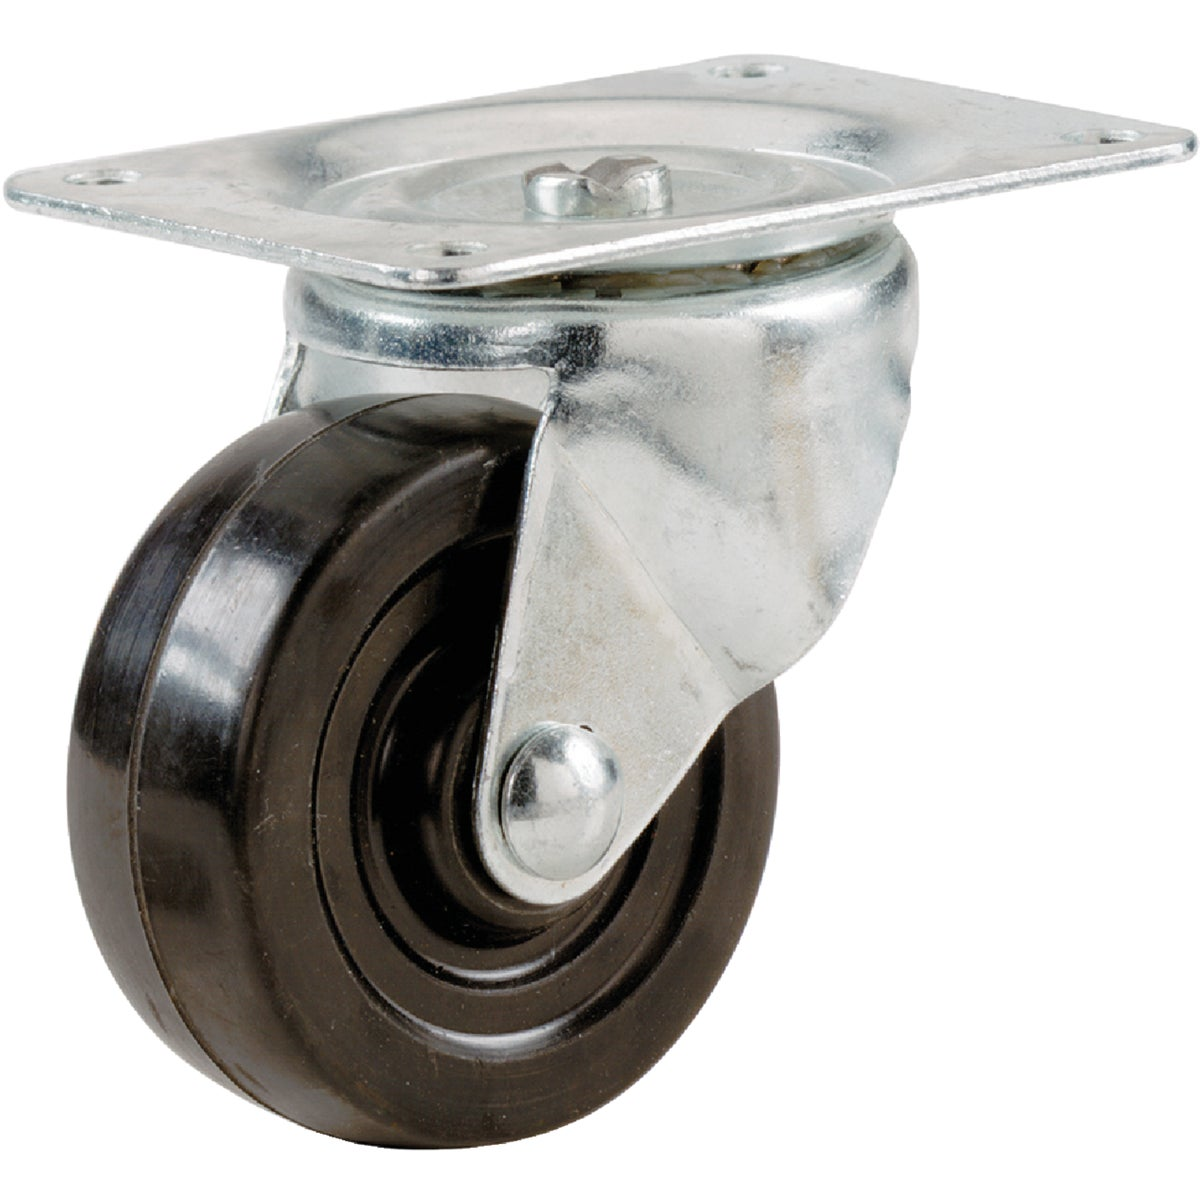 "2"" RUBBER SWIVEL CASTER - 9477 by Shepherd Hardware"